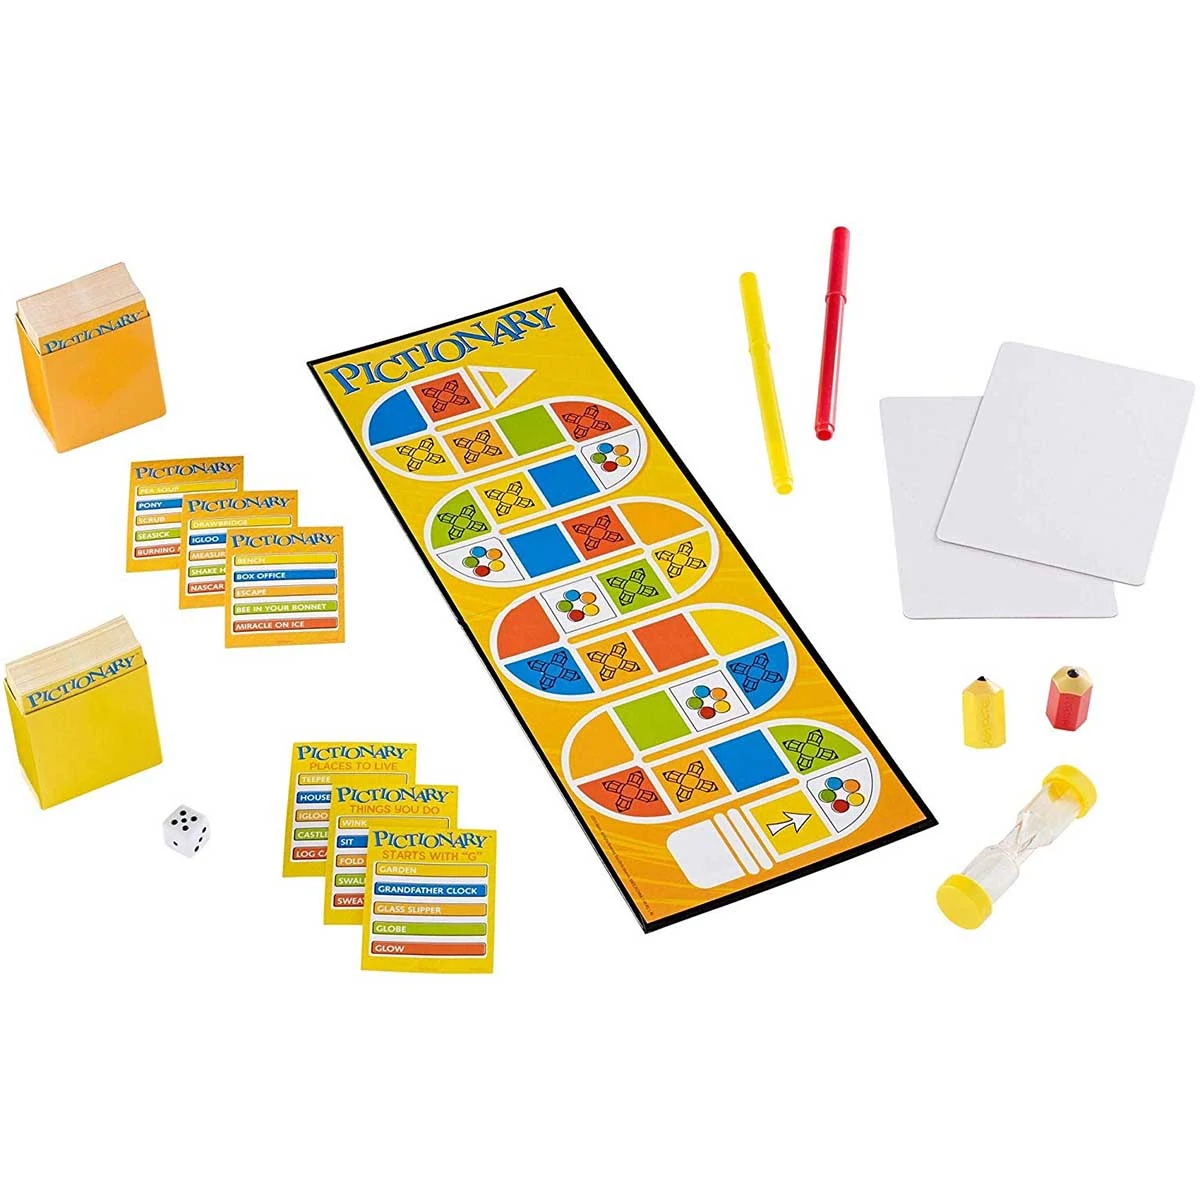 Pictionary board game 887961236088 ebay pictionary board game solutioingenieria Image collections